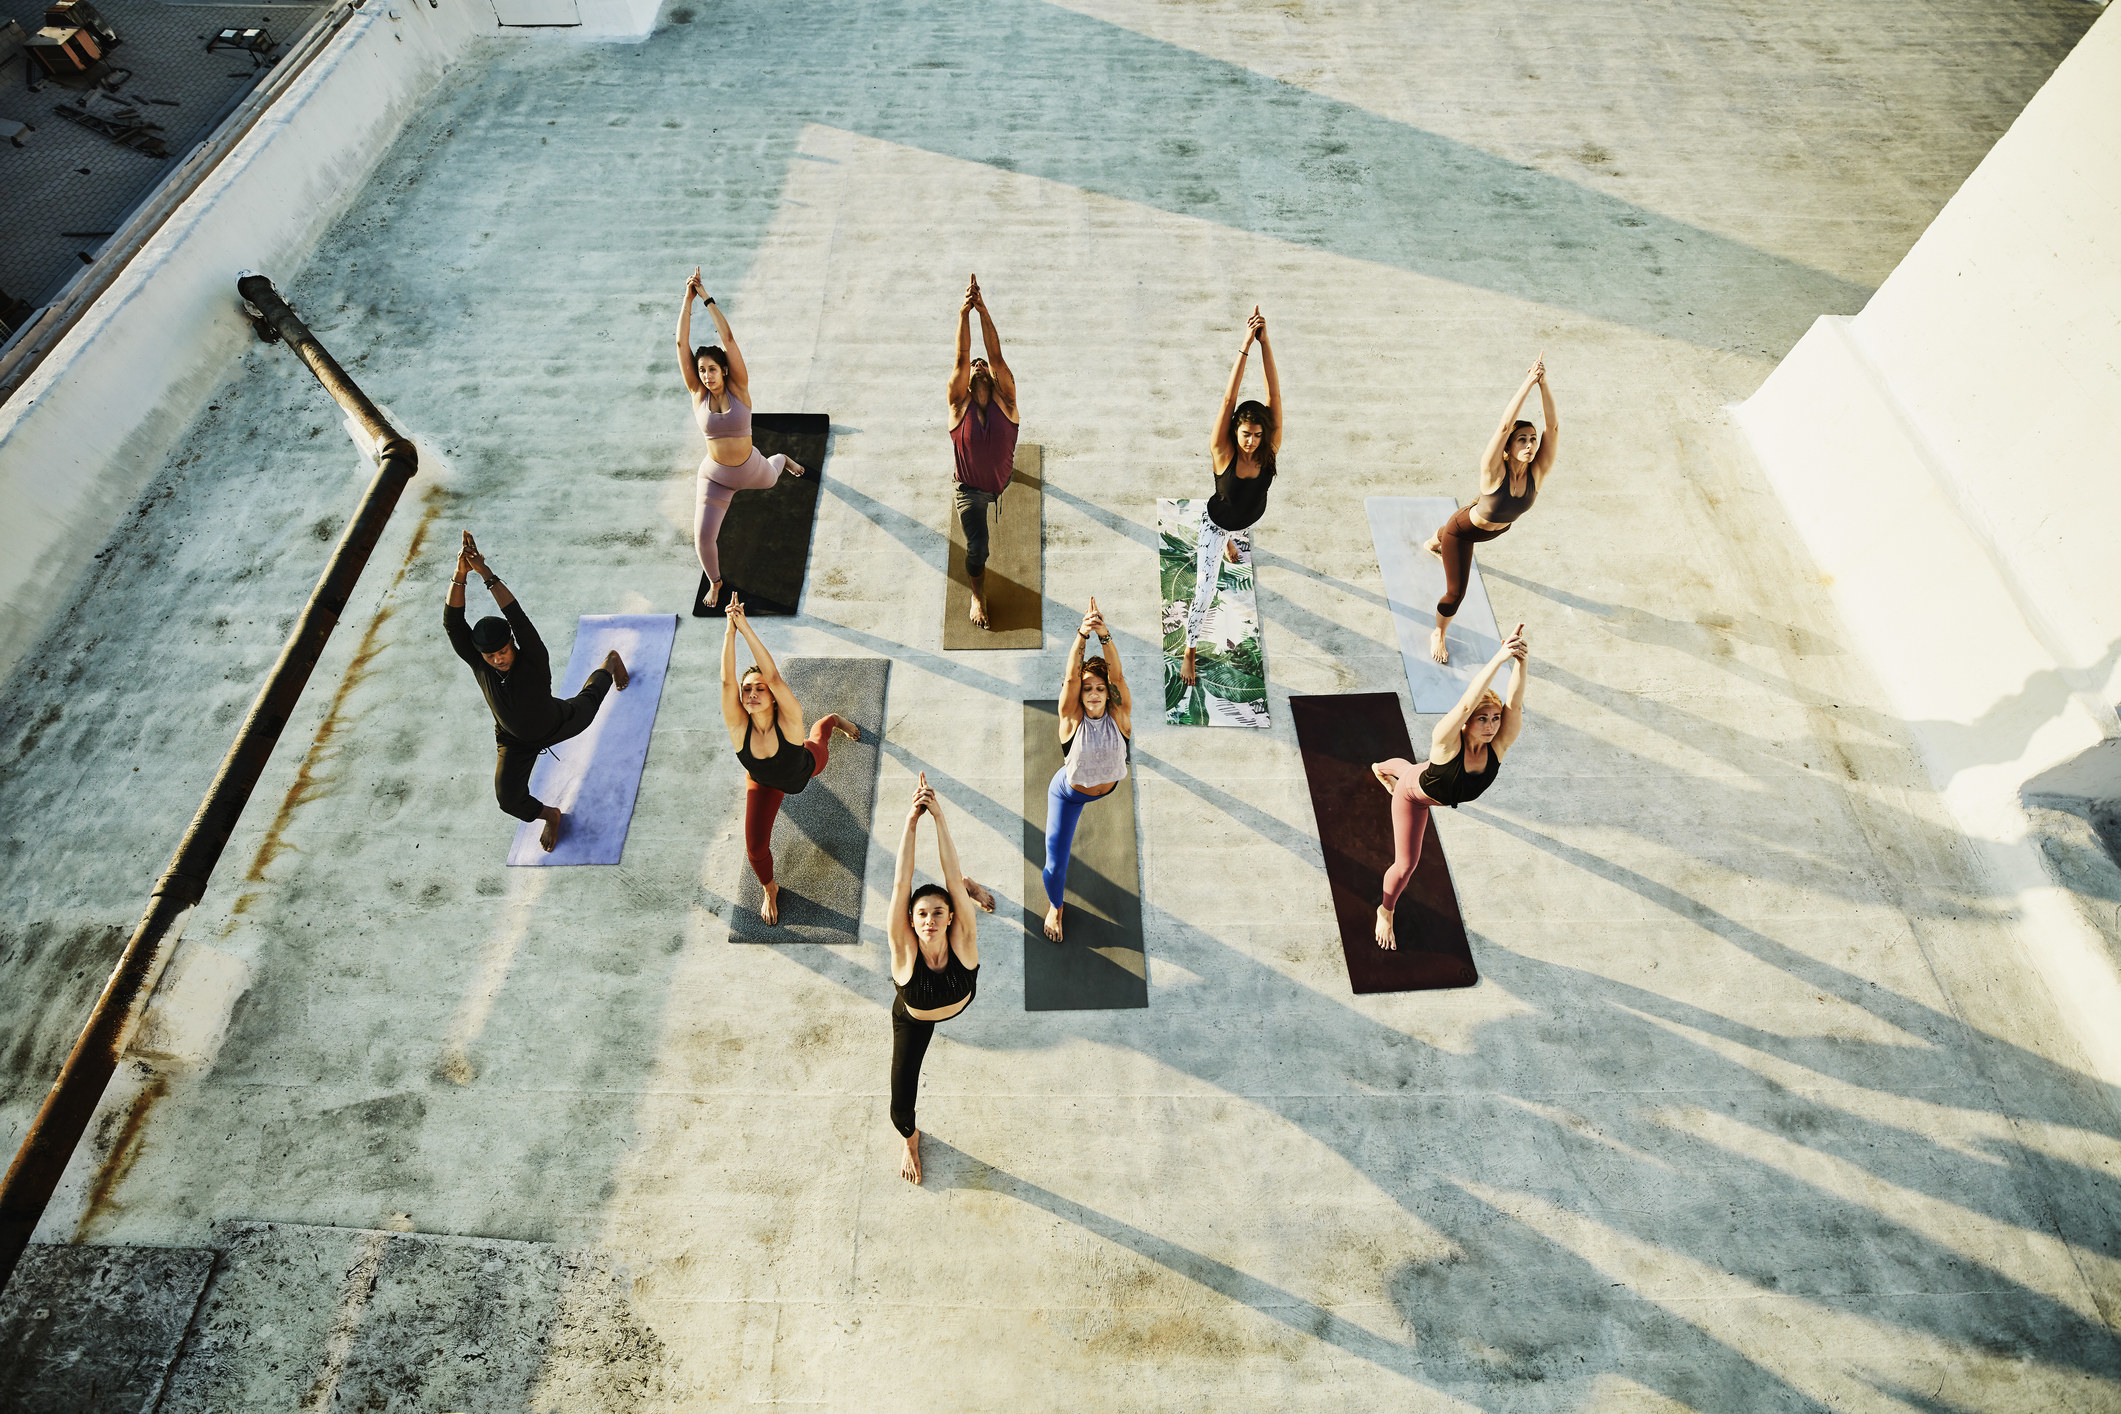 A group of people doing yoga from an aerial view.